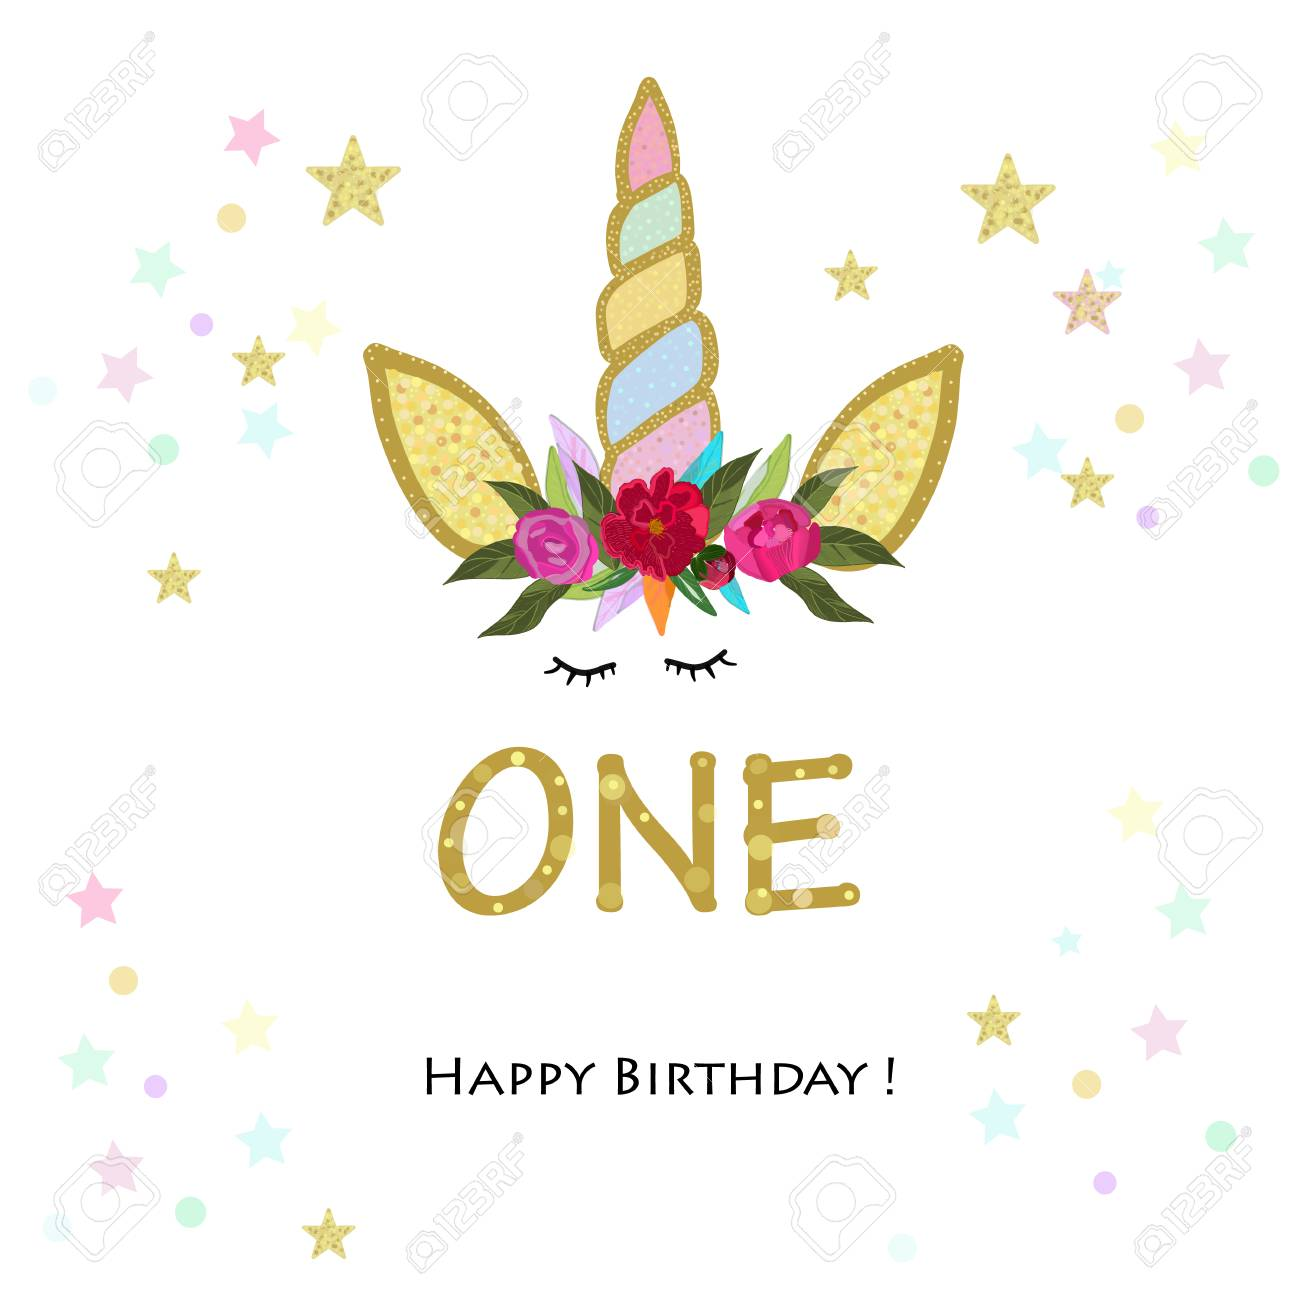 Birthday Greeting Card Design For 1 Year Old Template